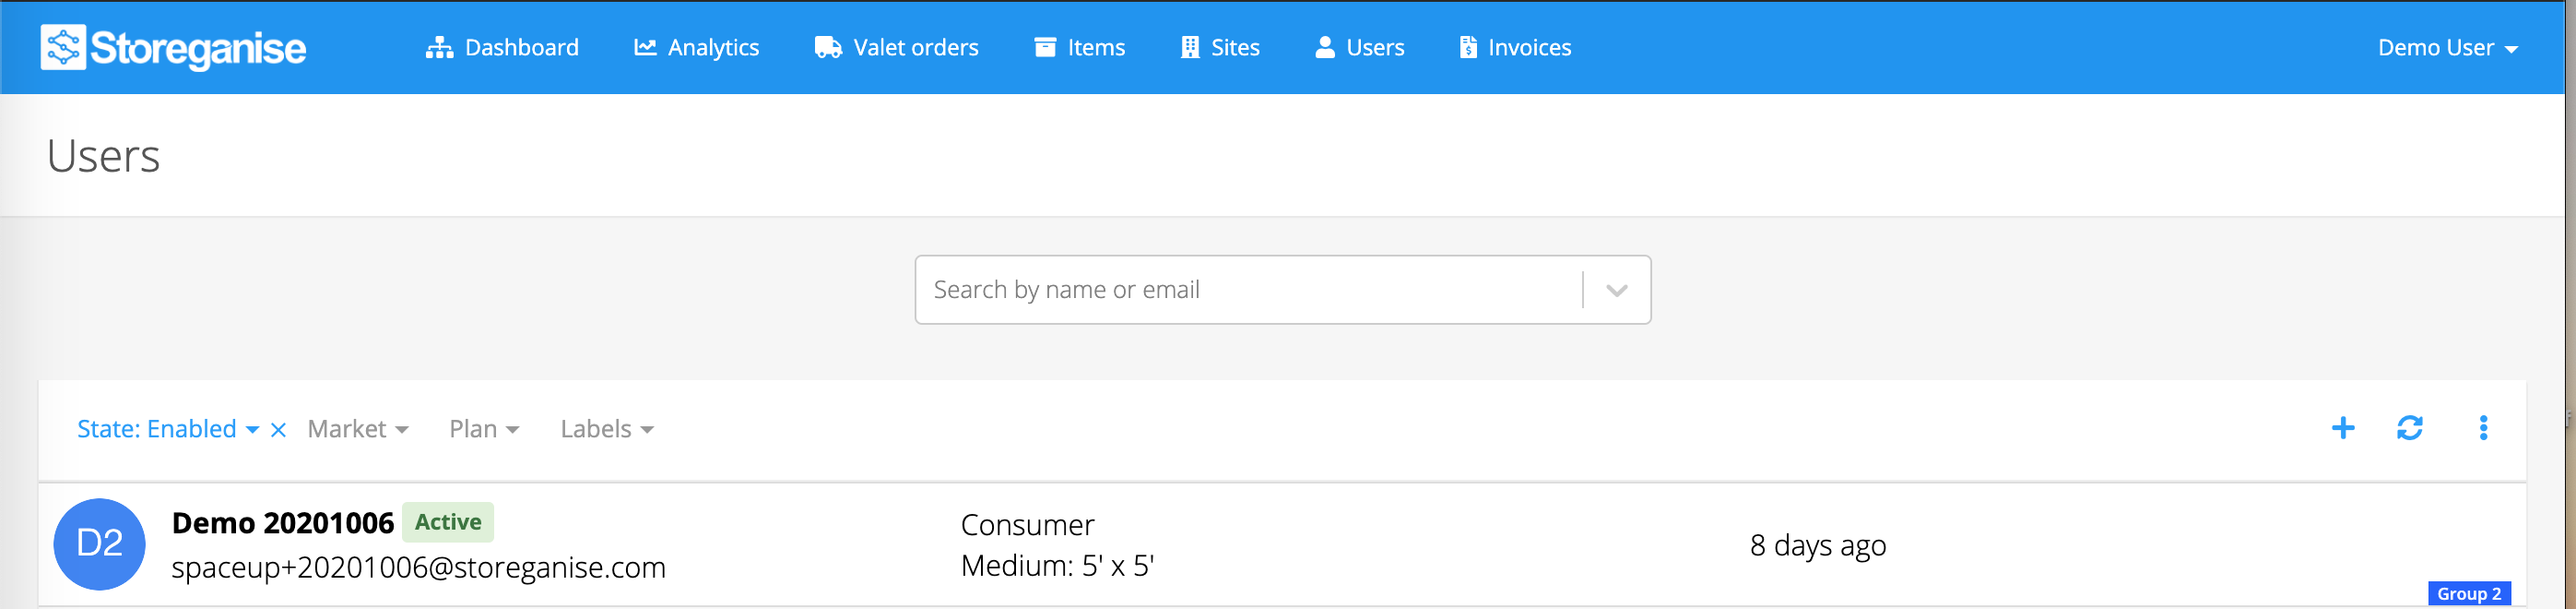 search bar for searching for specific users